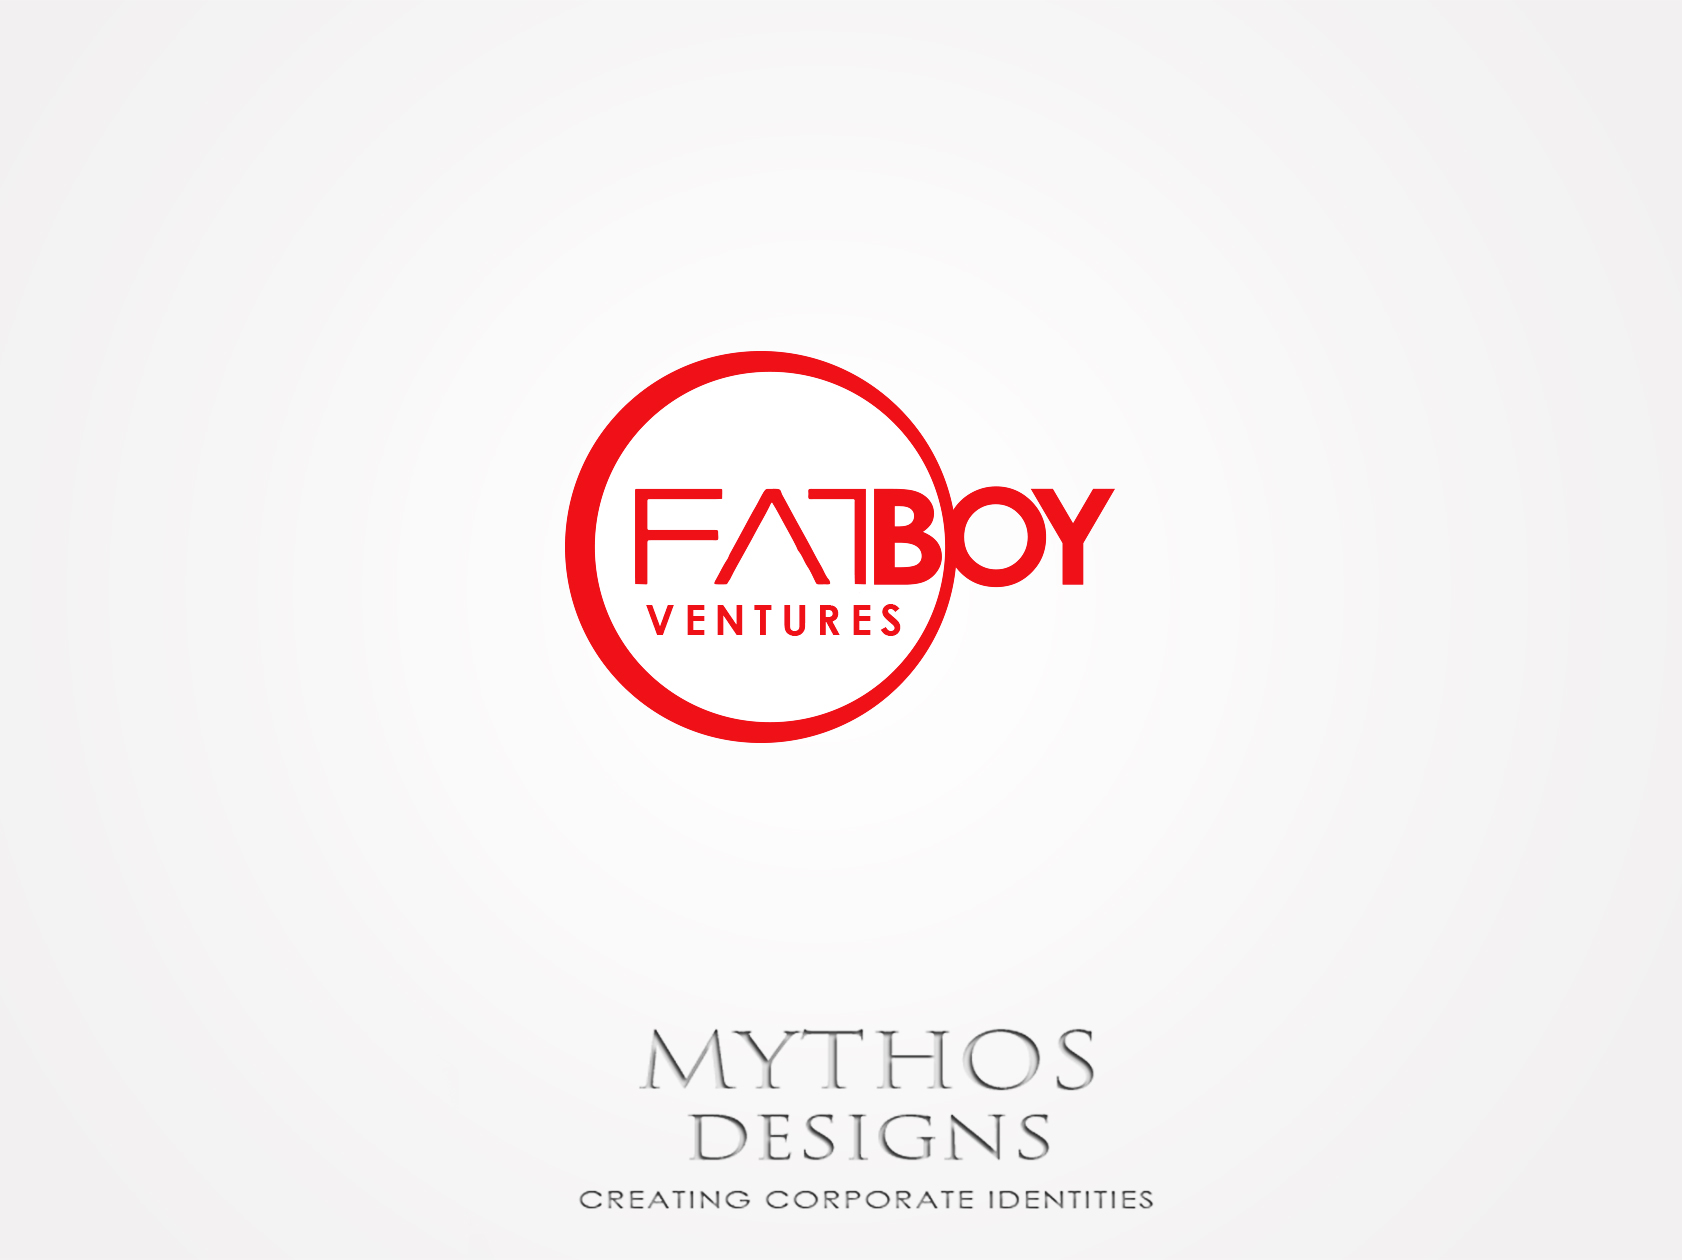 Logo Design by Mythos Designs - Entry No. 135 in the Logo Design Contest Fun Logo Design for Fat Boy Ventures.